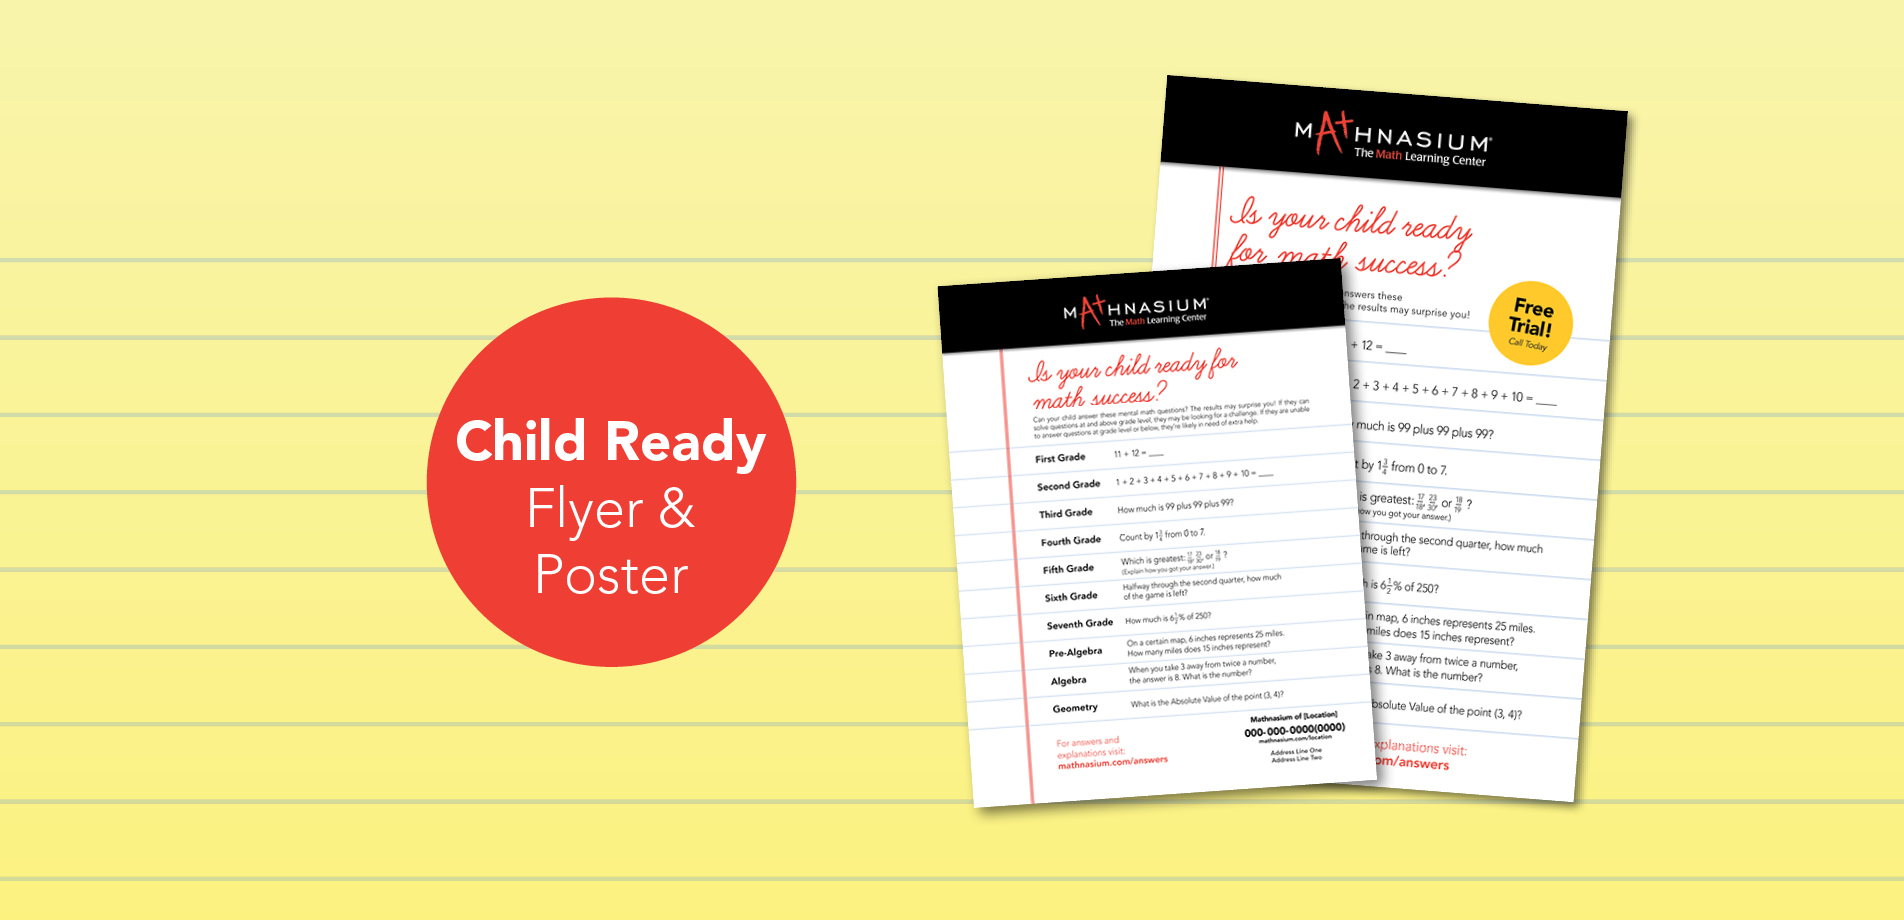 Sample-Email-Child-Ready-Poster-Flyer-2016